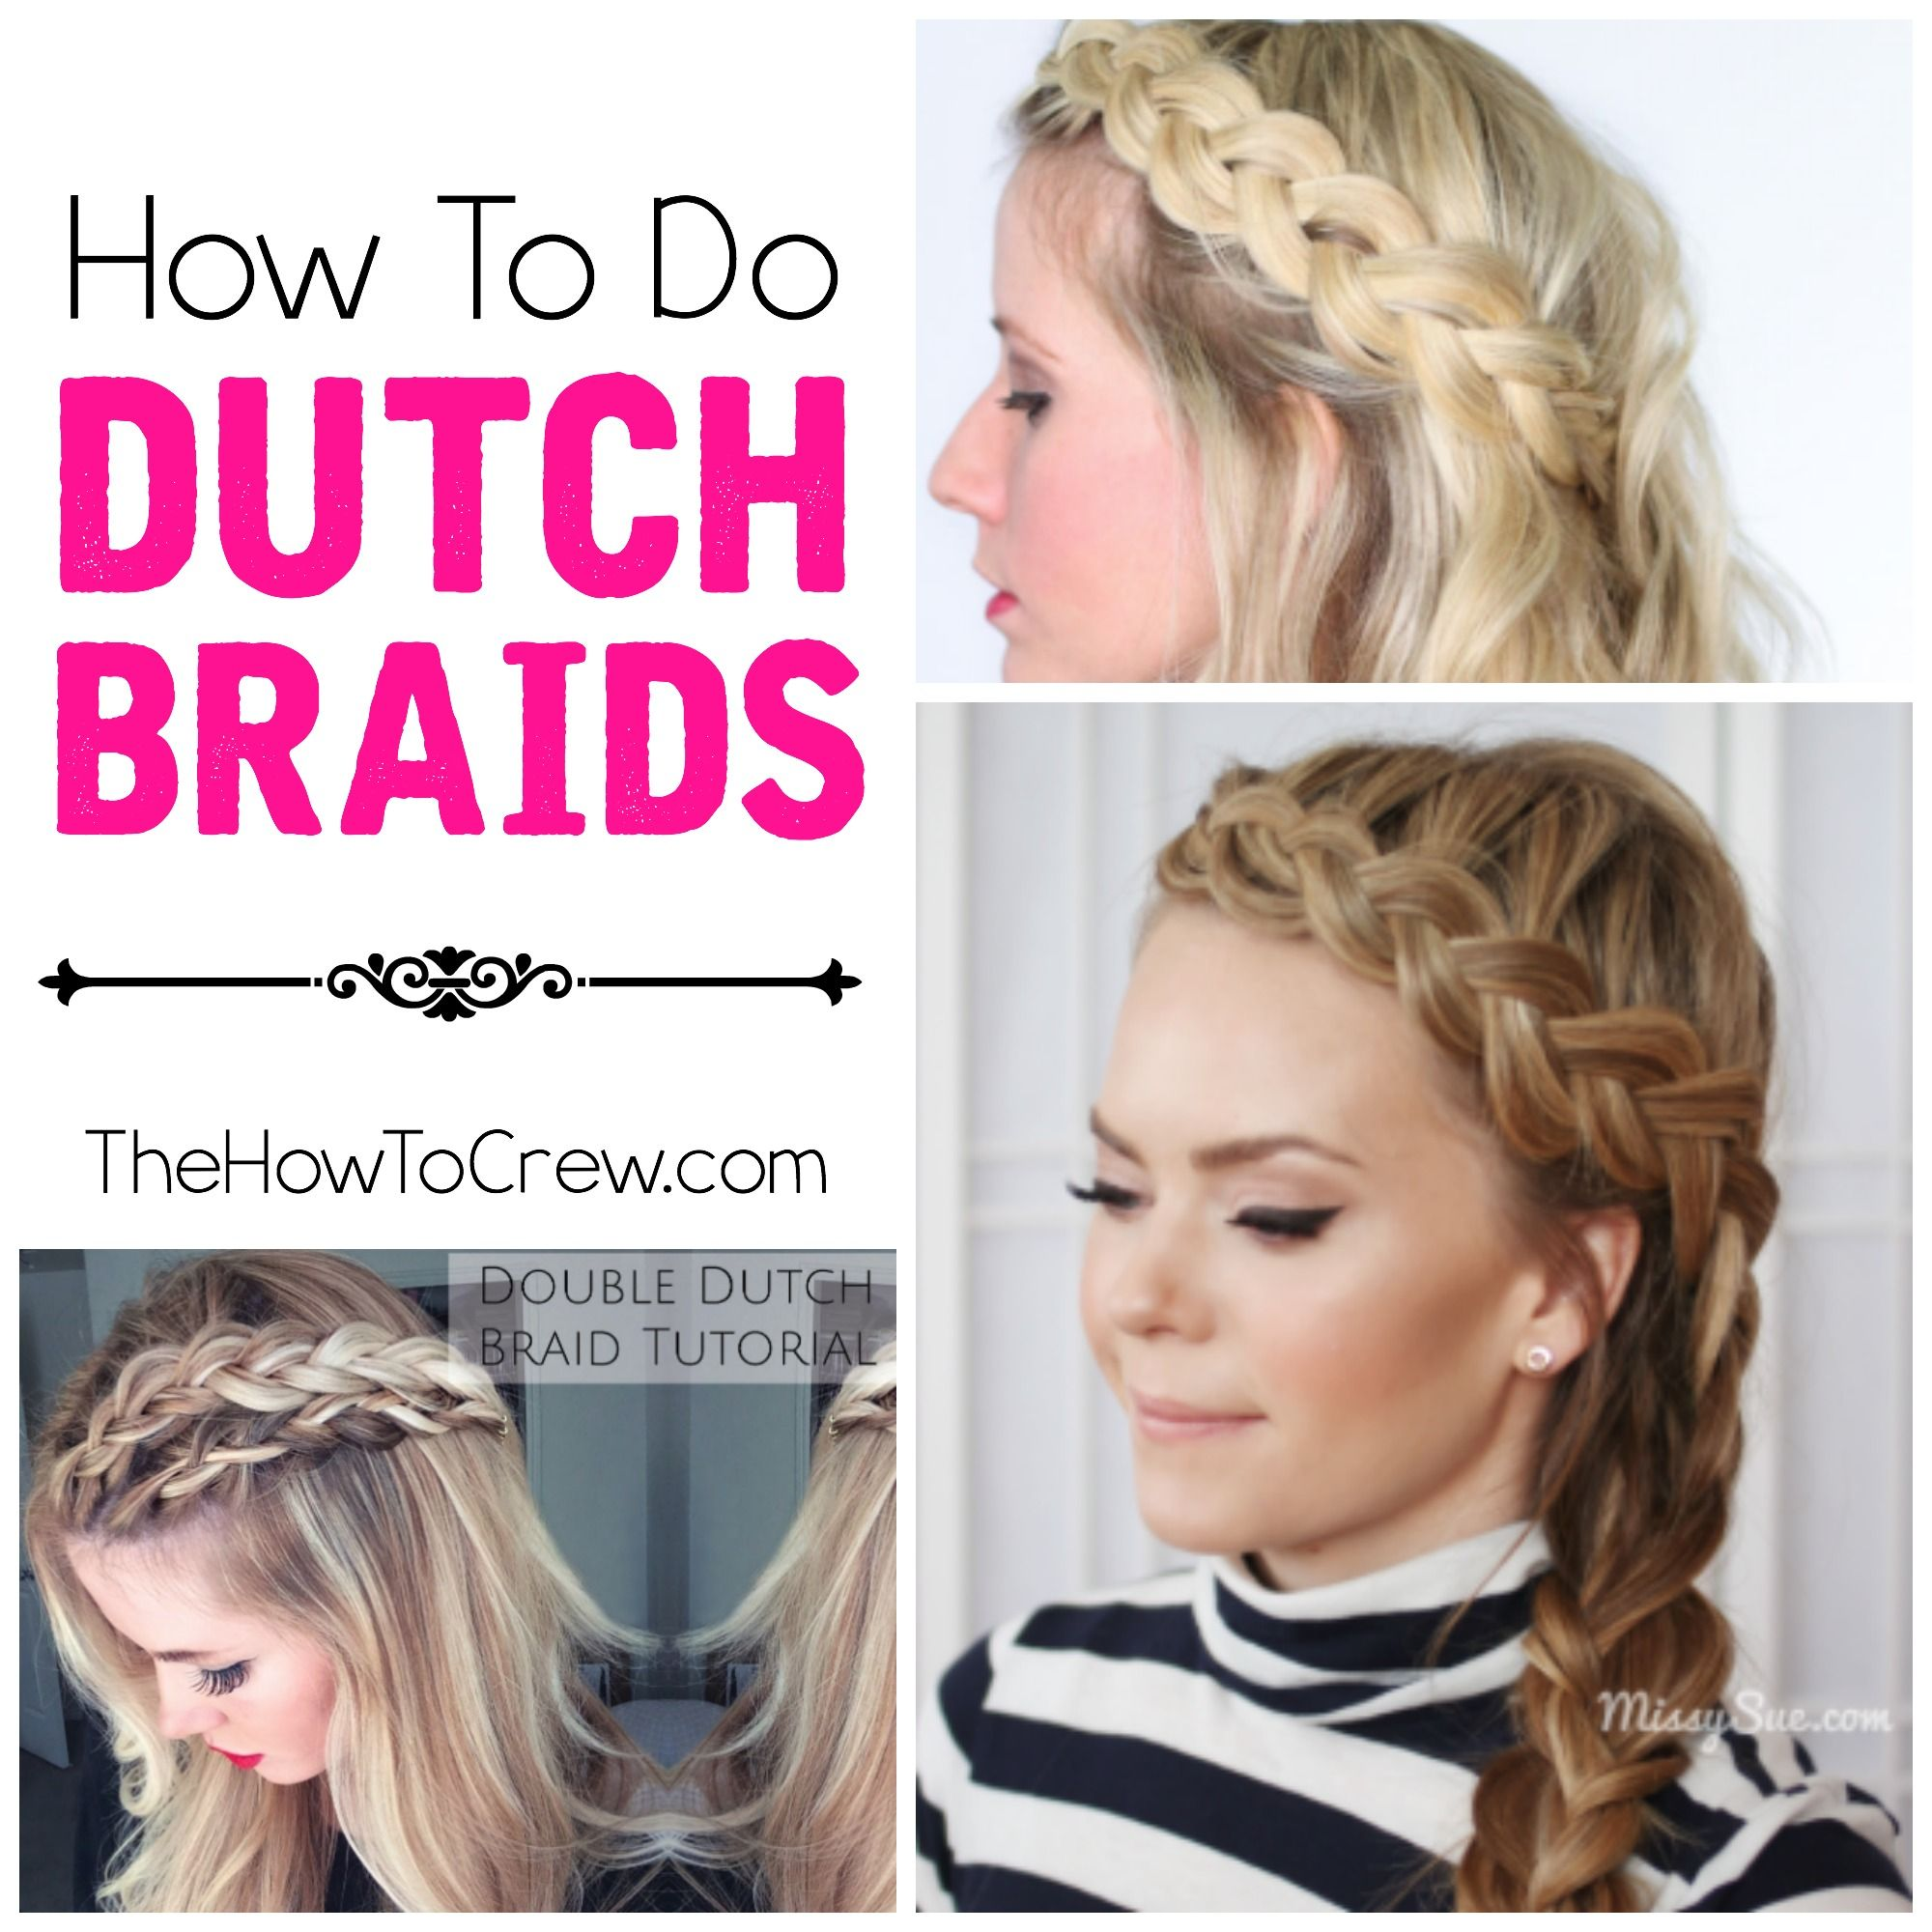 how to do dutch braids - 5 of the best tutorials on thehowtocrew